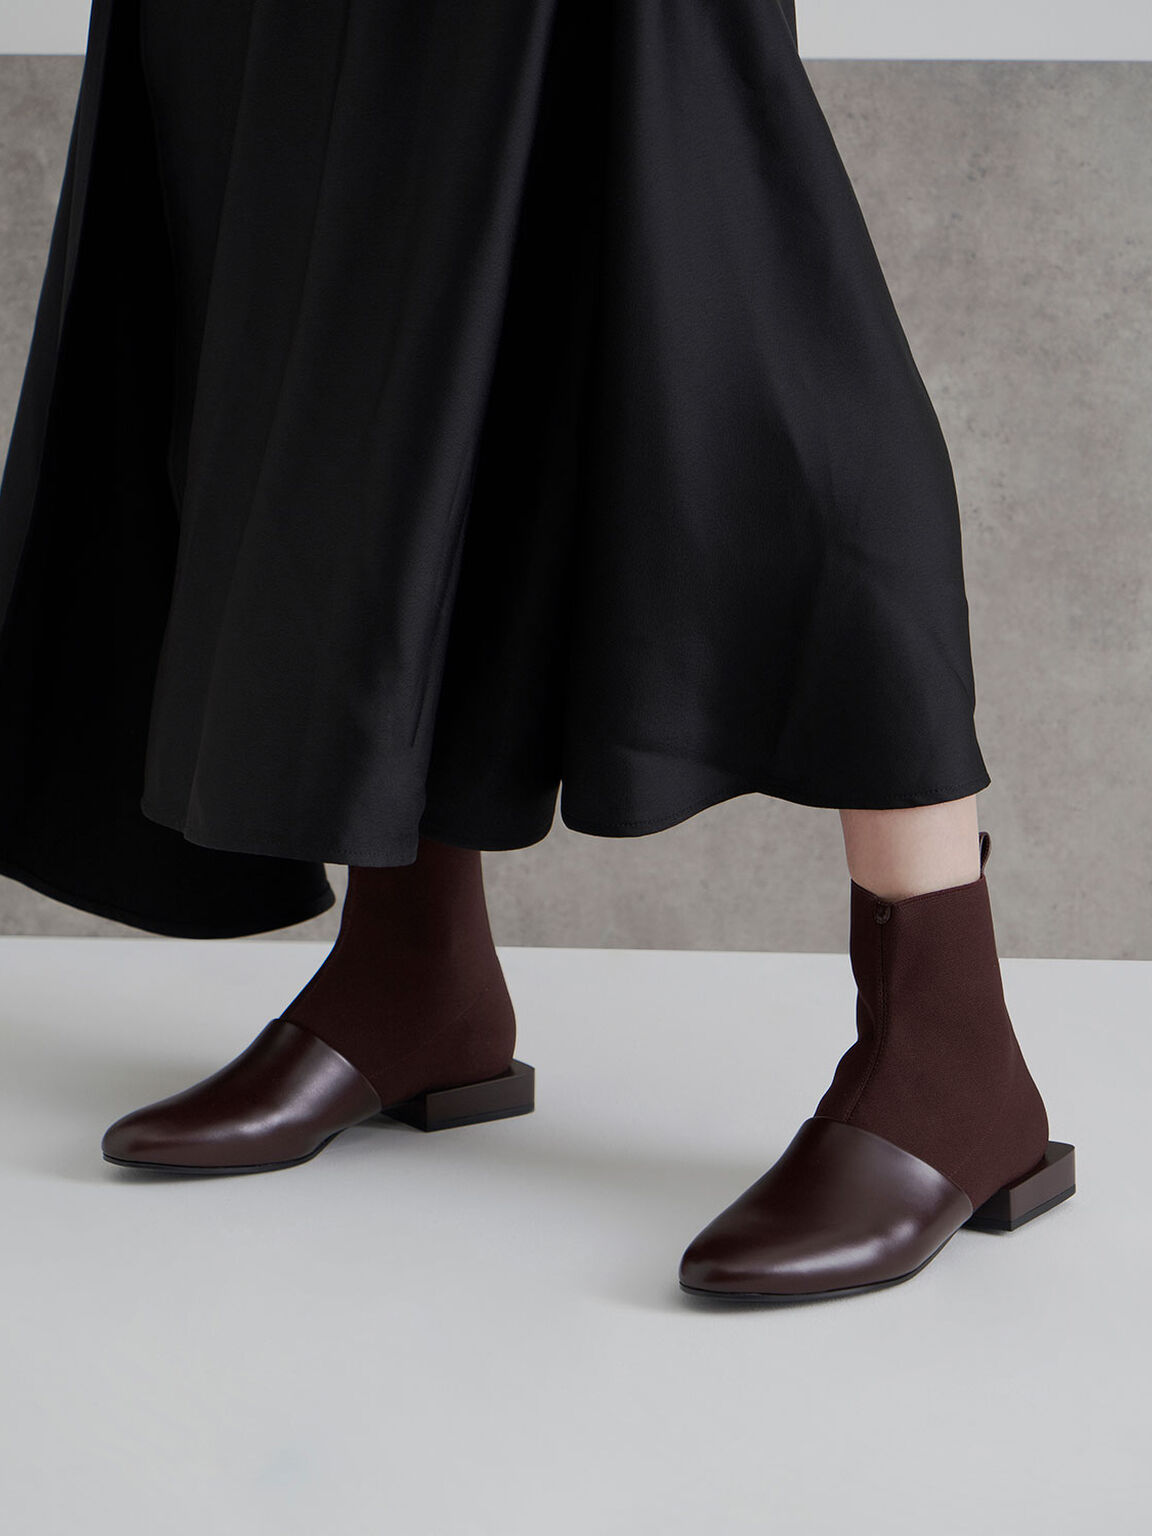 Slip-On Ankle Boots, Maroon, hi-res